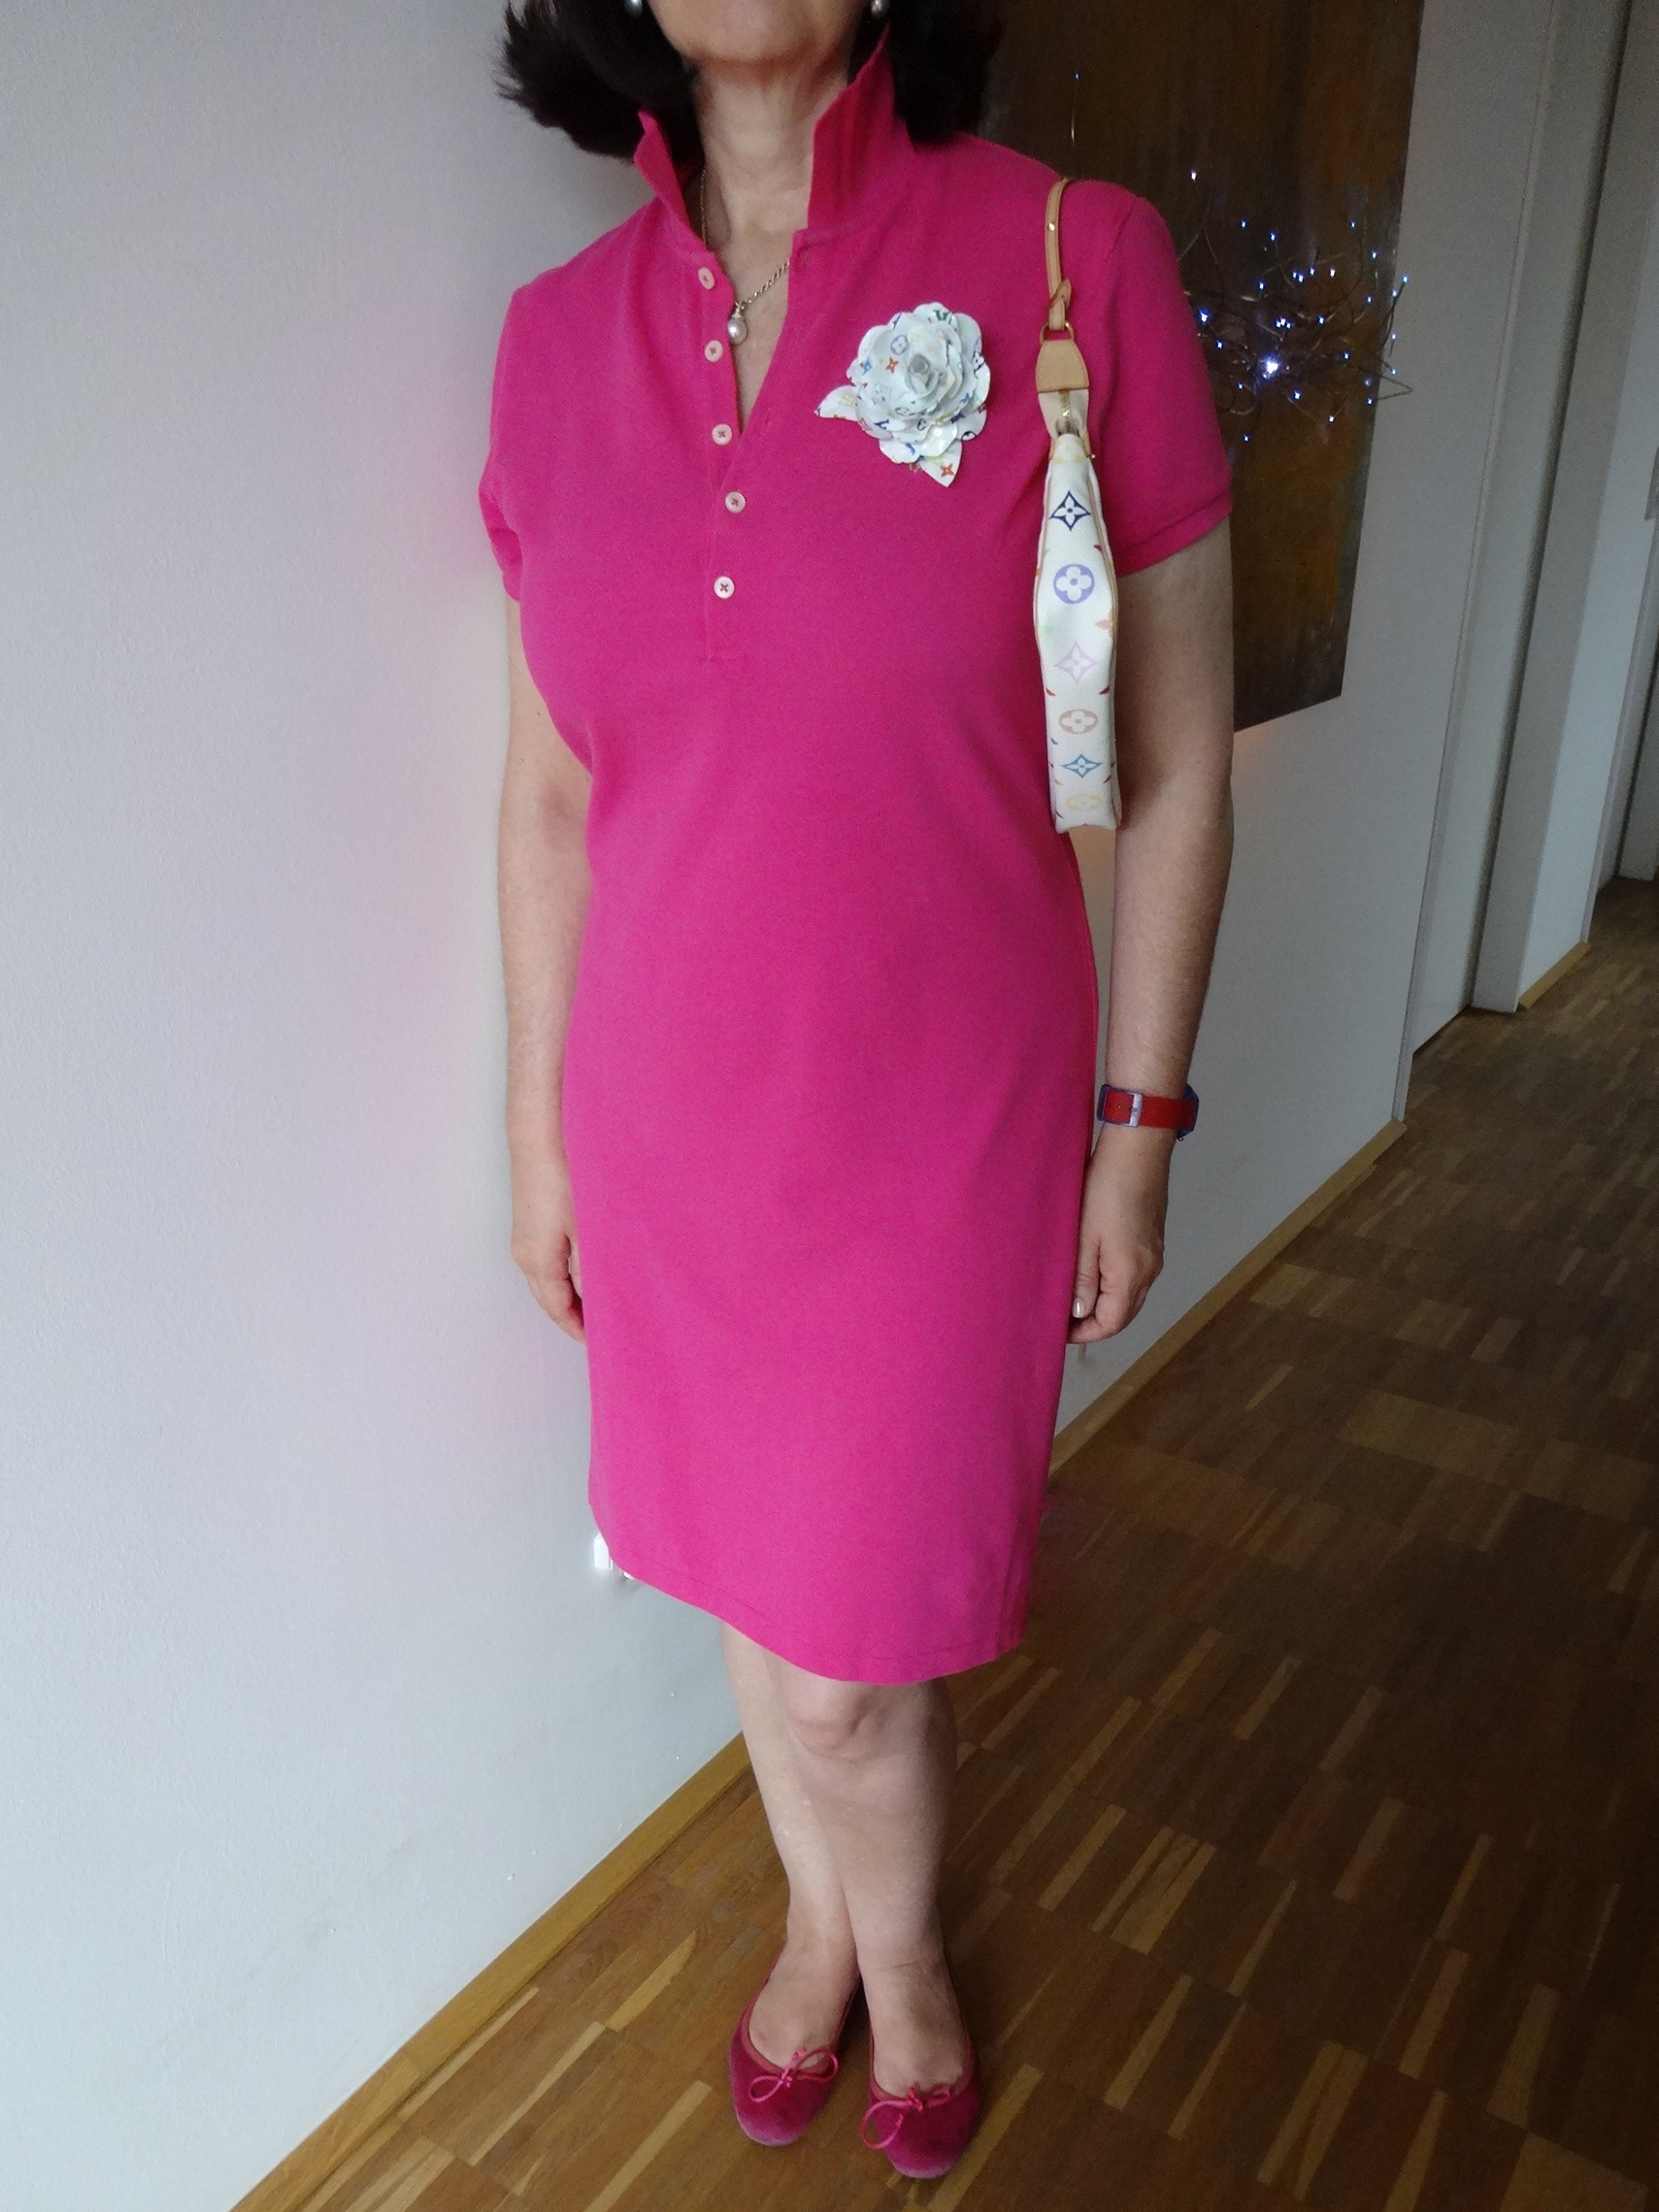 white-ish accessories with bold pink dress